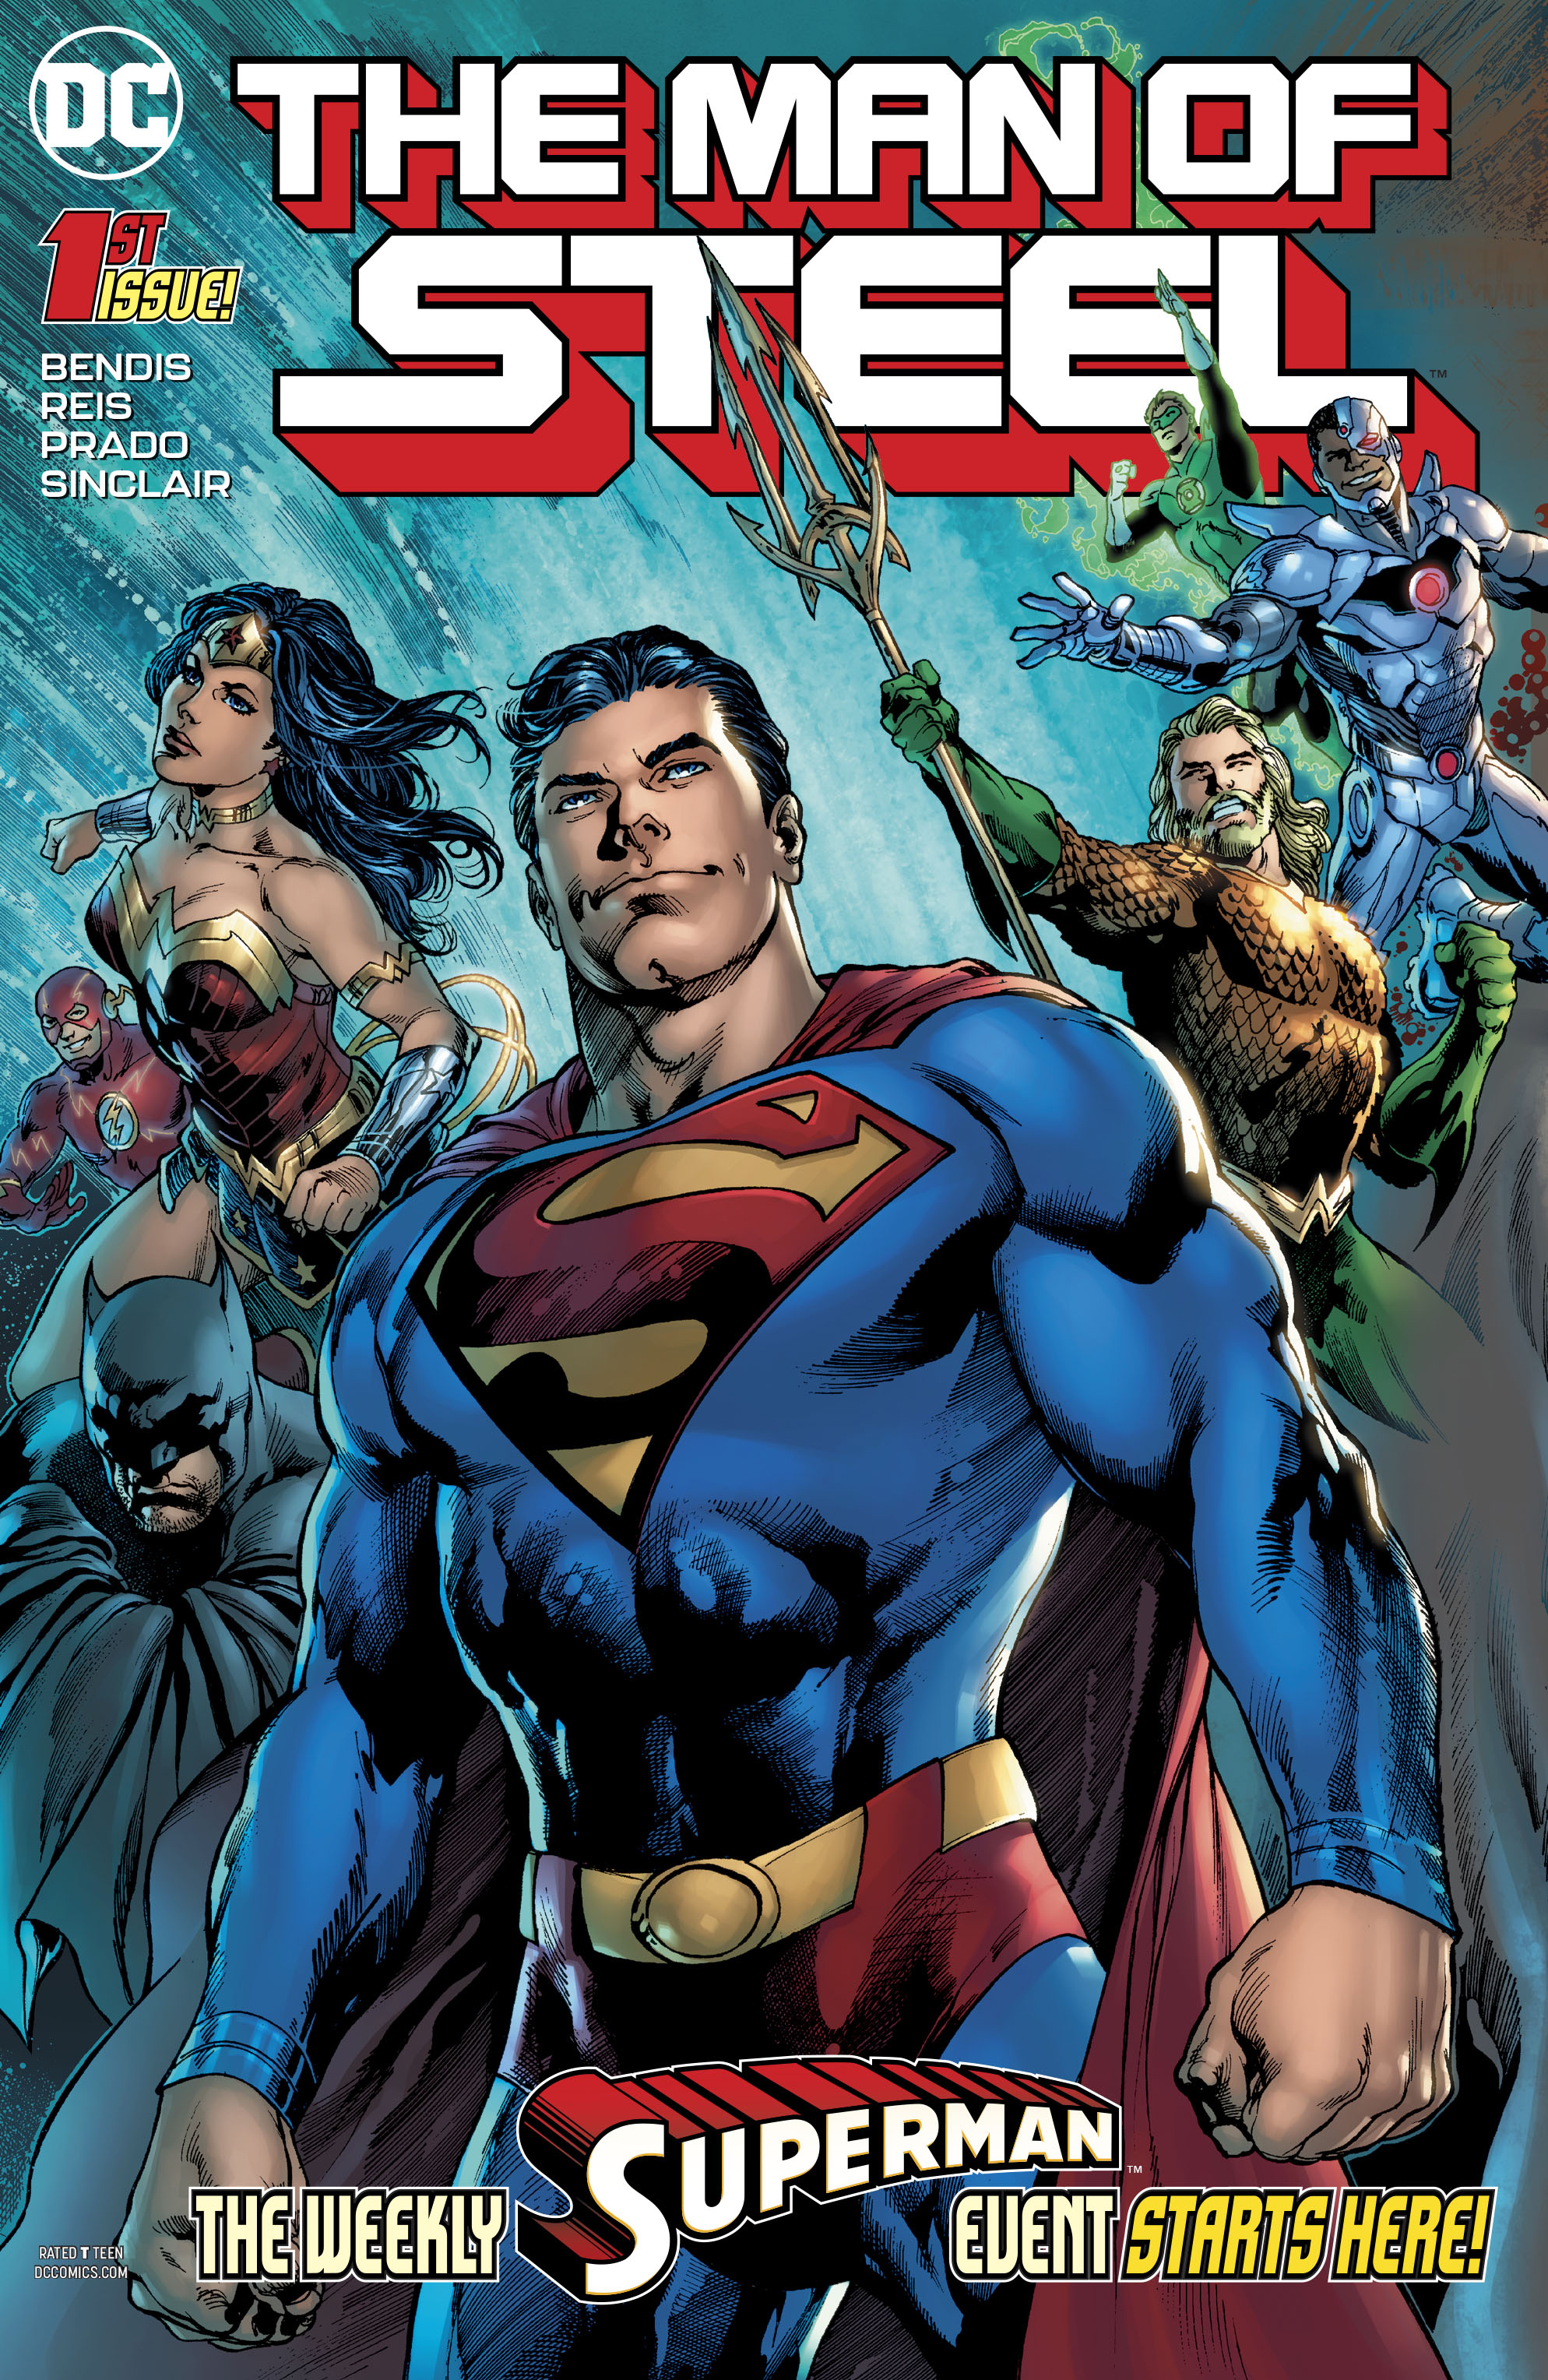 Man of Steel #1  marks the beginning of Brian Michael Bendis at DC.